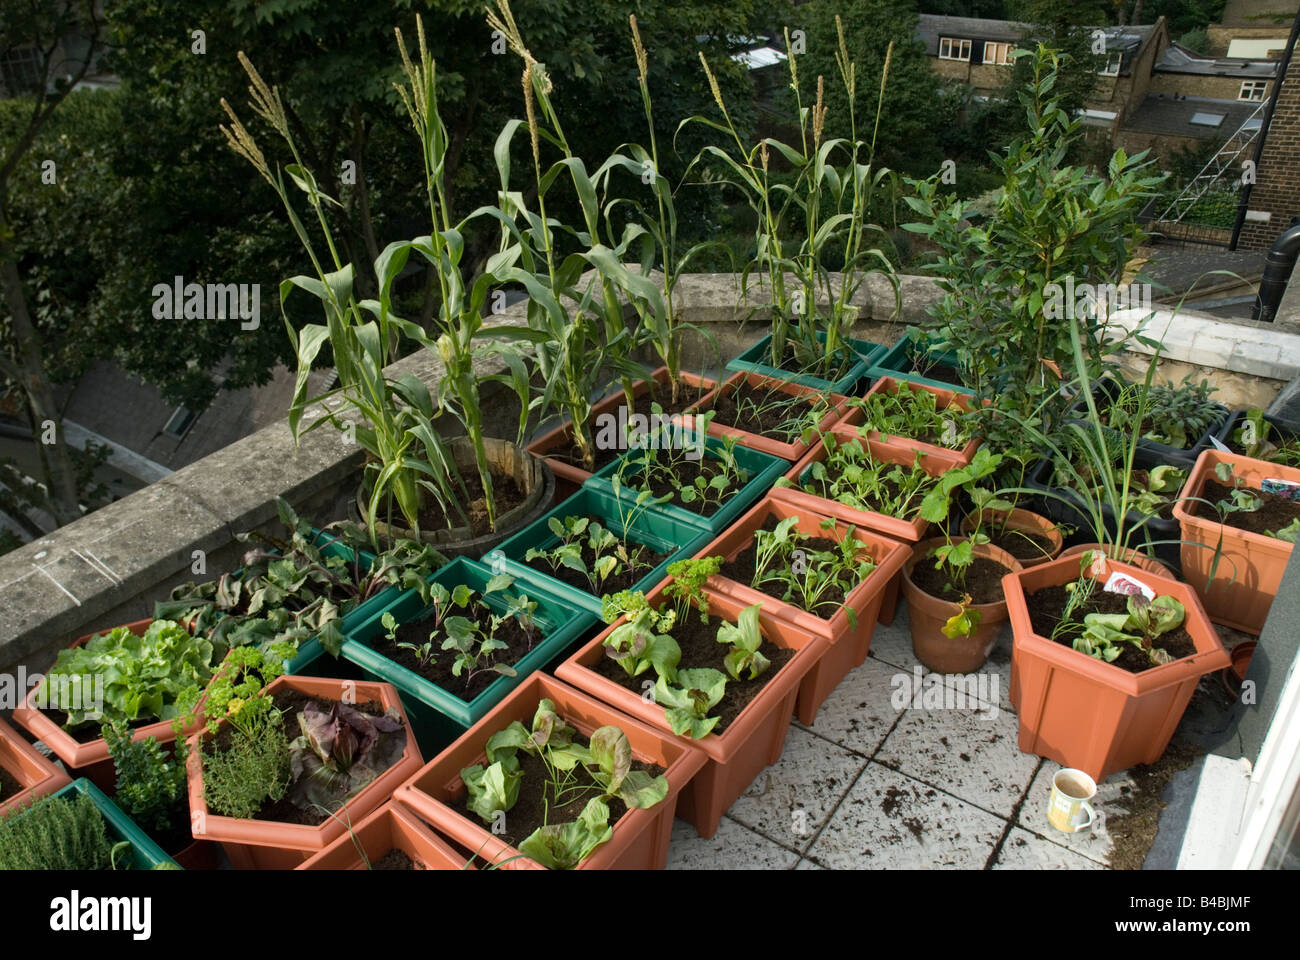 Stock Photo   Vegetables And Salads Growing In Plastic Pots On Rooftop  Urban Vegetable Garden London